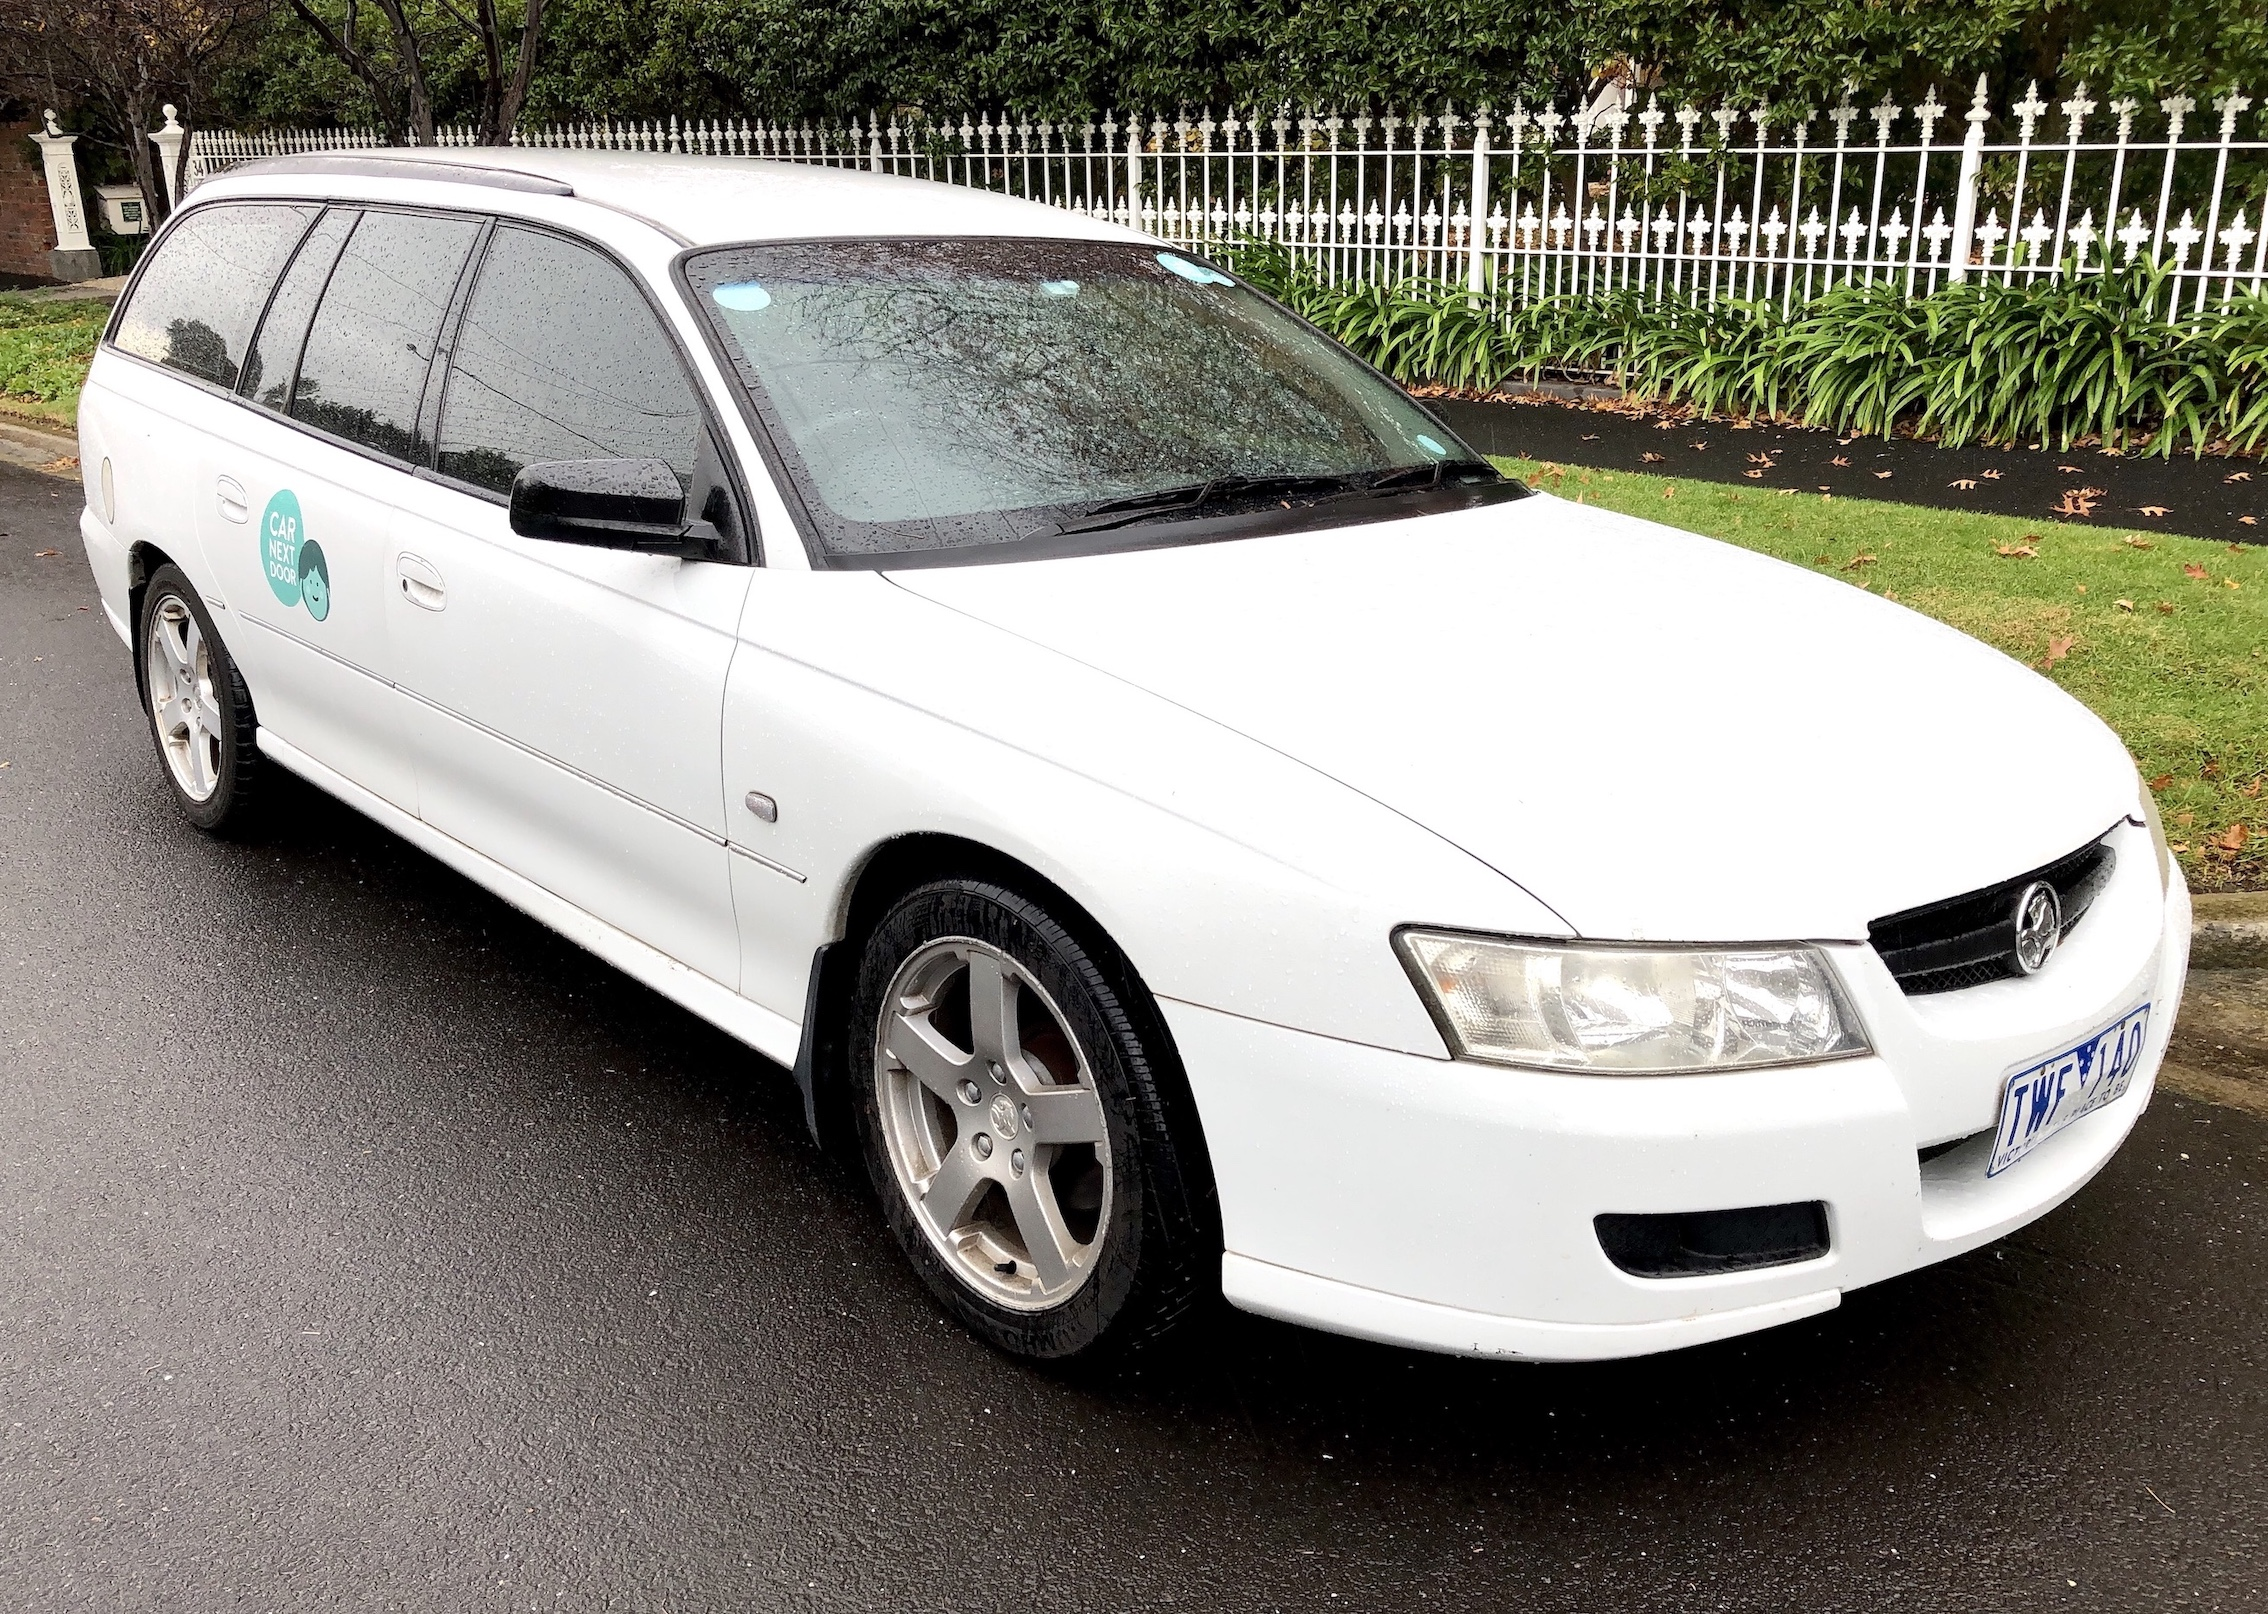 Picture of Natalie's 2005 Holden Commodore